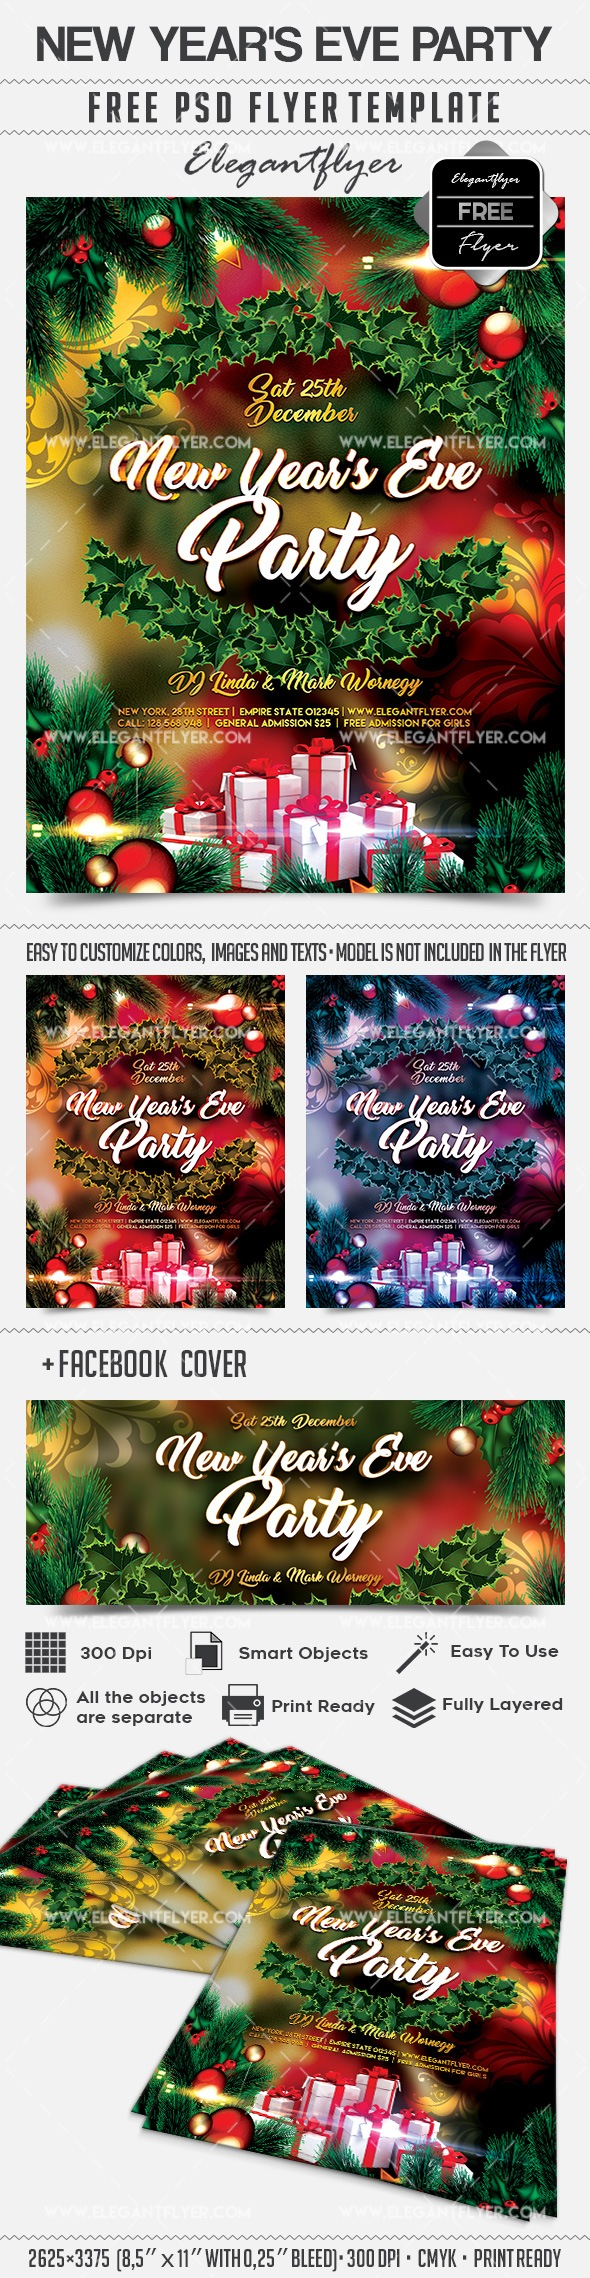 Bigpreview_New_Years_Eve_Party_flyer_psd_template_facebook_cover